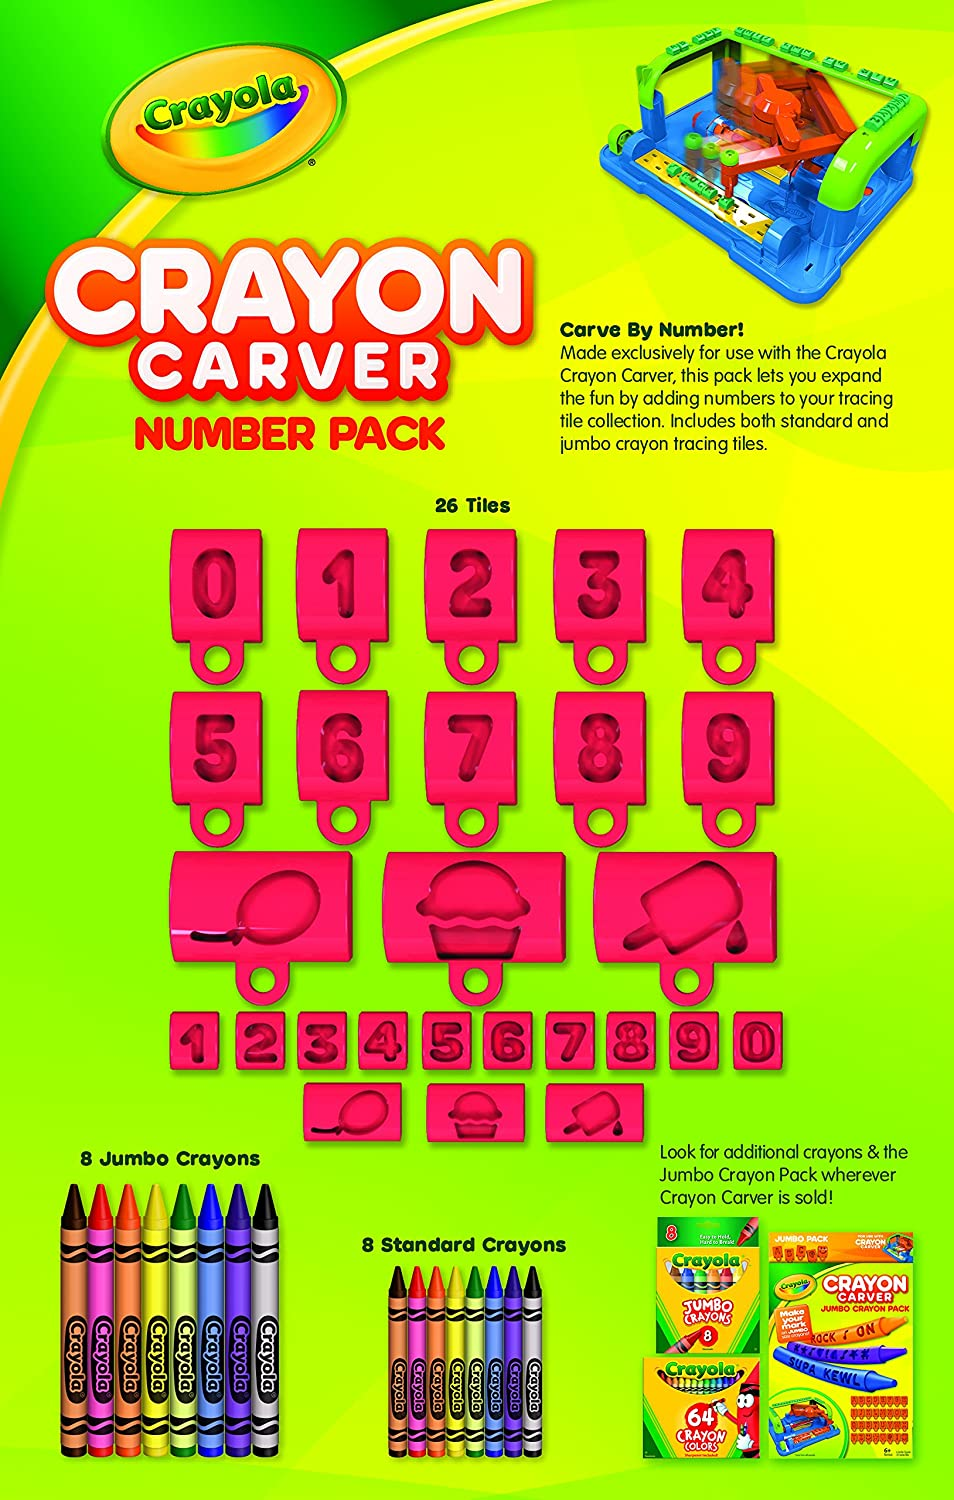 Amazon.com: Crayola Crayon Carver, Numbers Expansion Pack: Toys & Games